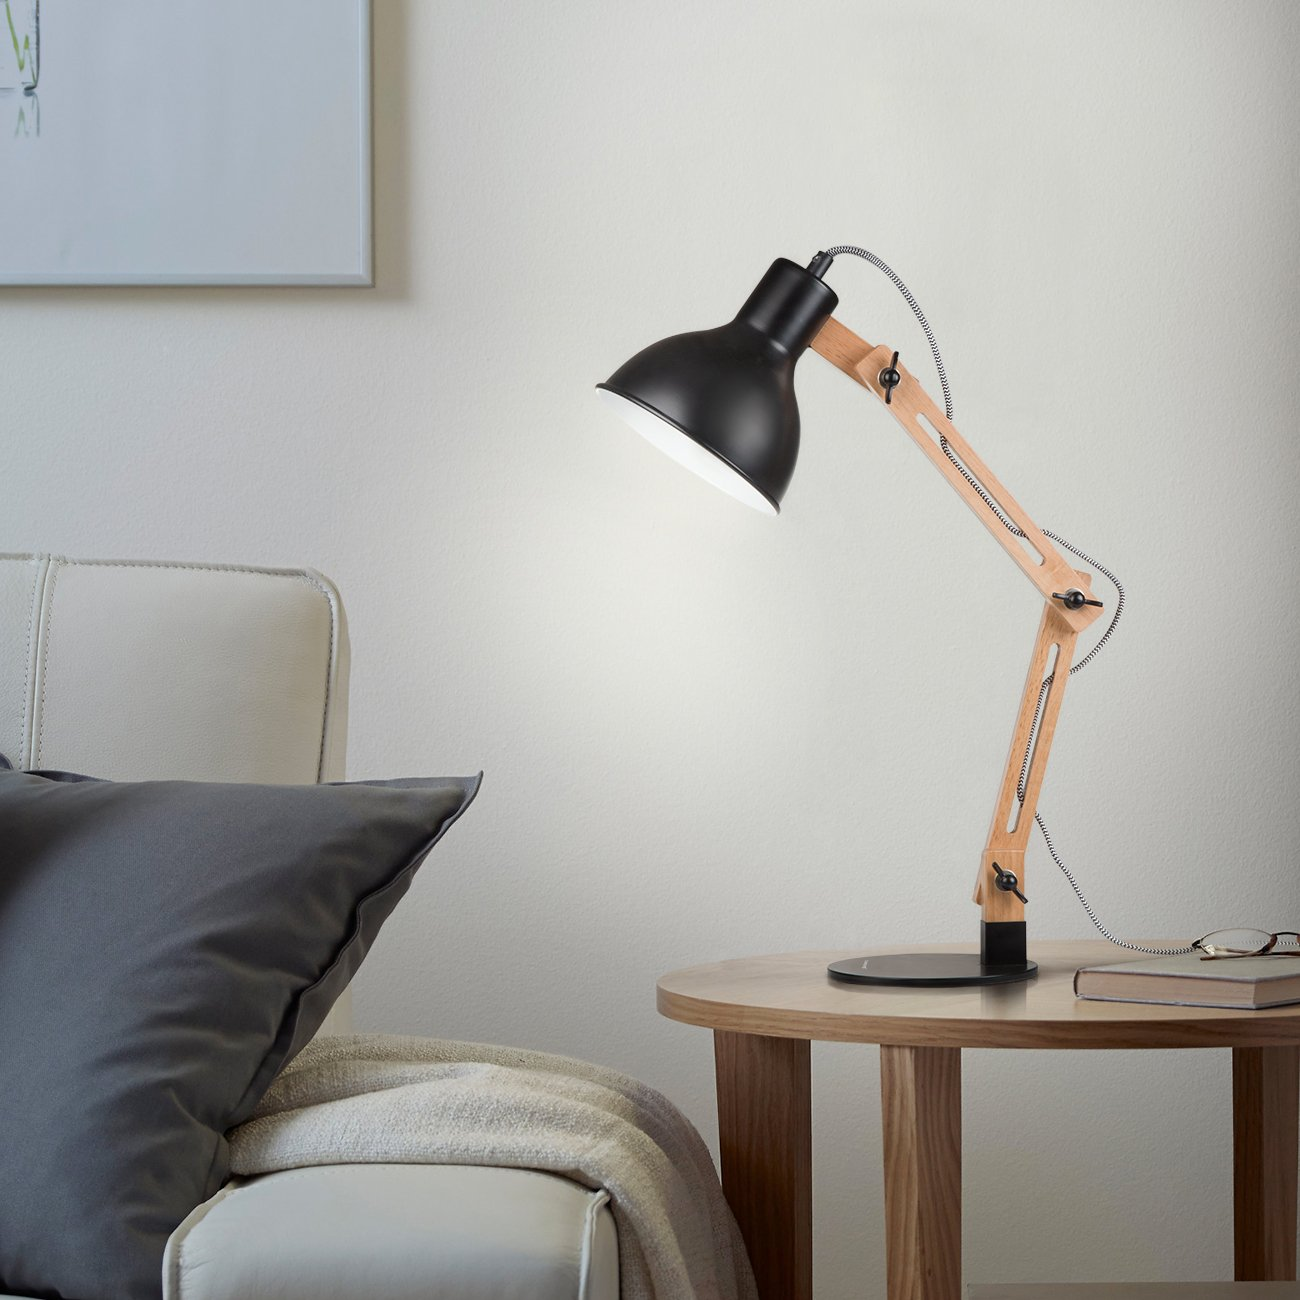 Tomons Scandinavian Swing Arm Wood Desk Lamp, Black 3